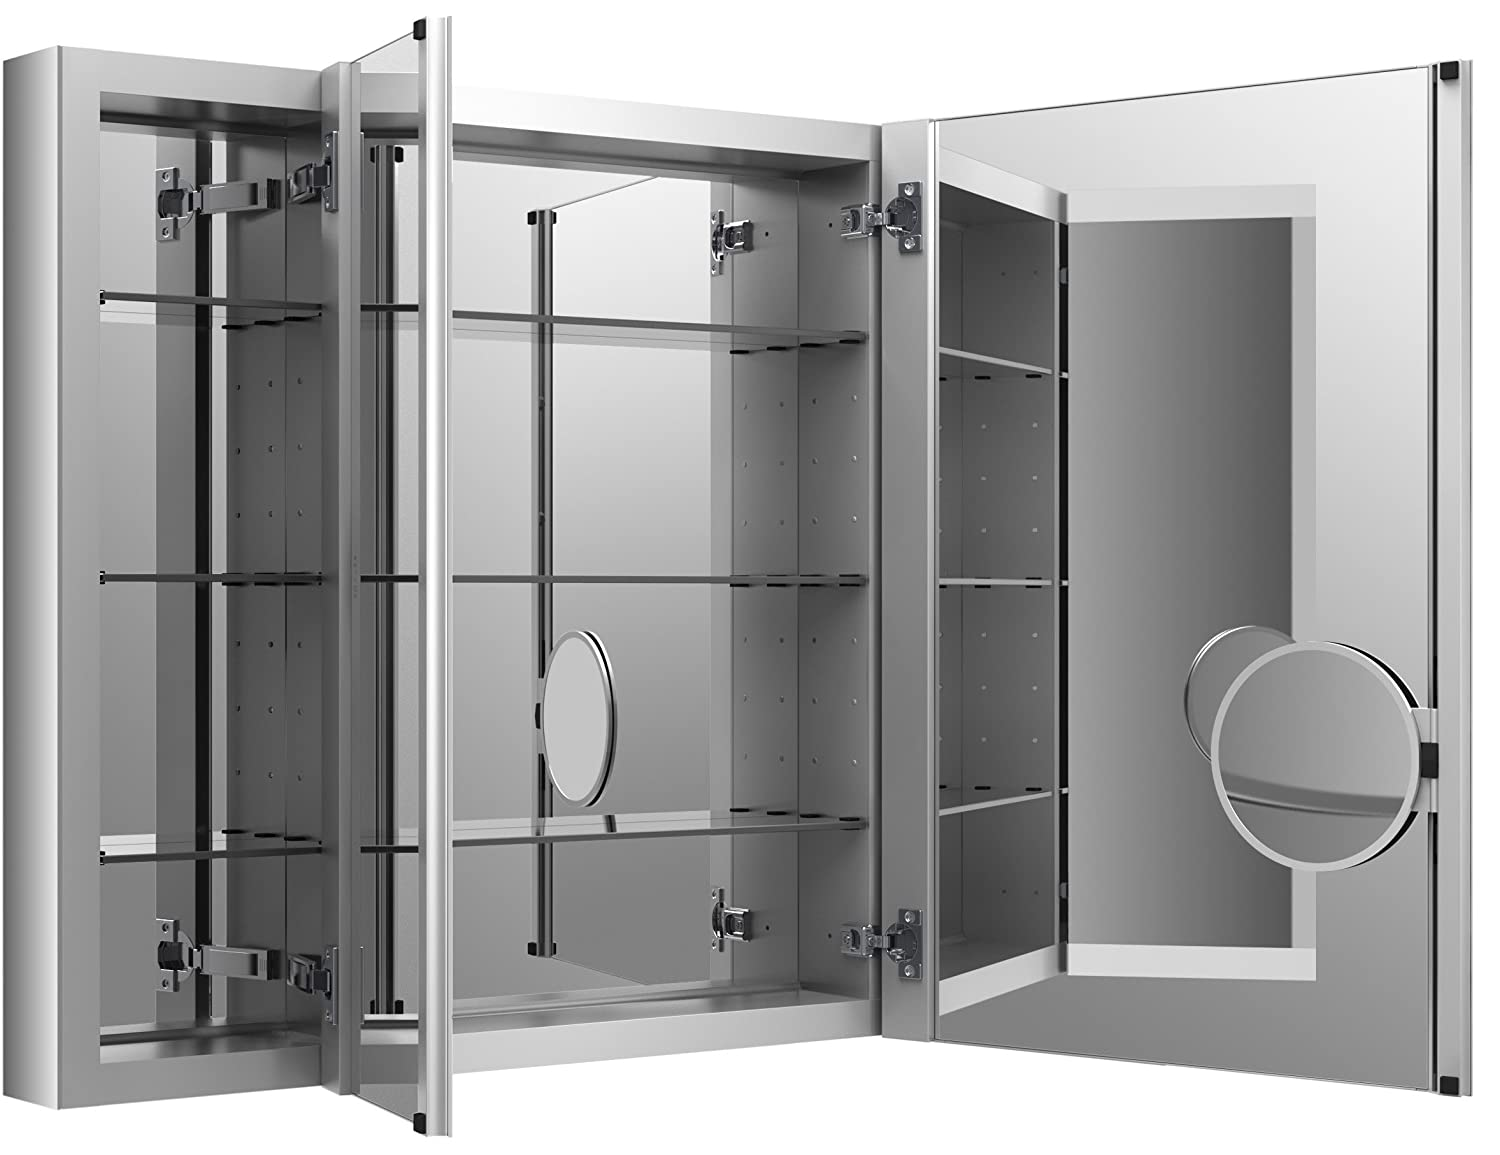 Amazon com  KOHLER K 99011 NA Verdera 40 Inch By 30 Inch Slow Close Medicine Cabinet With Magnifying Mirror  Home Improvement. Amazon com  KOHLER K 99011 NA Verdera 40 Inch By 30 Inch Slow